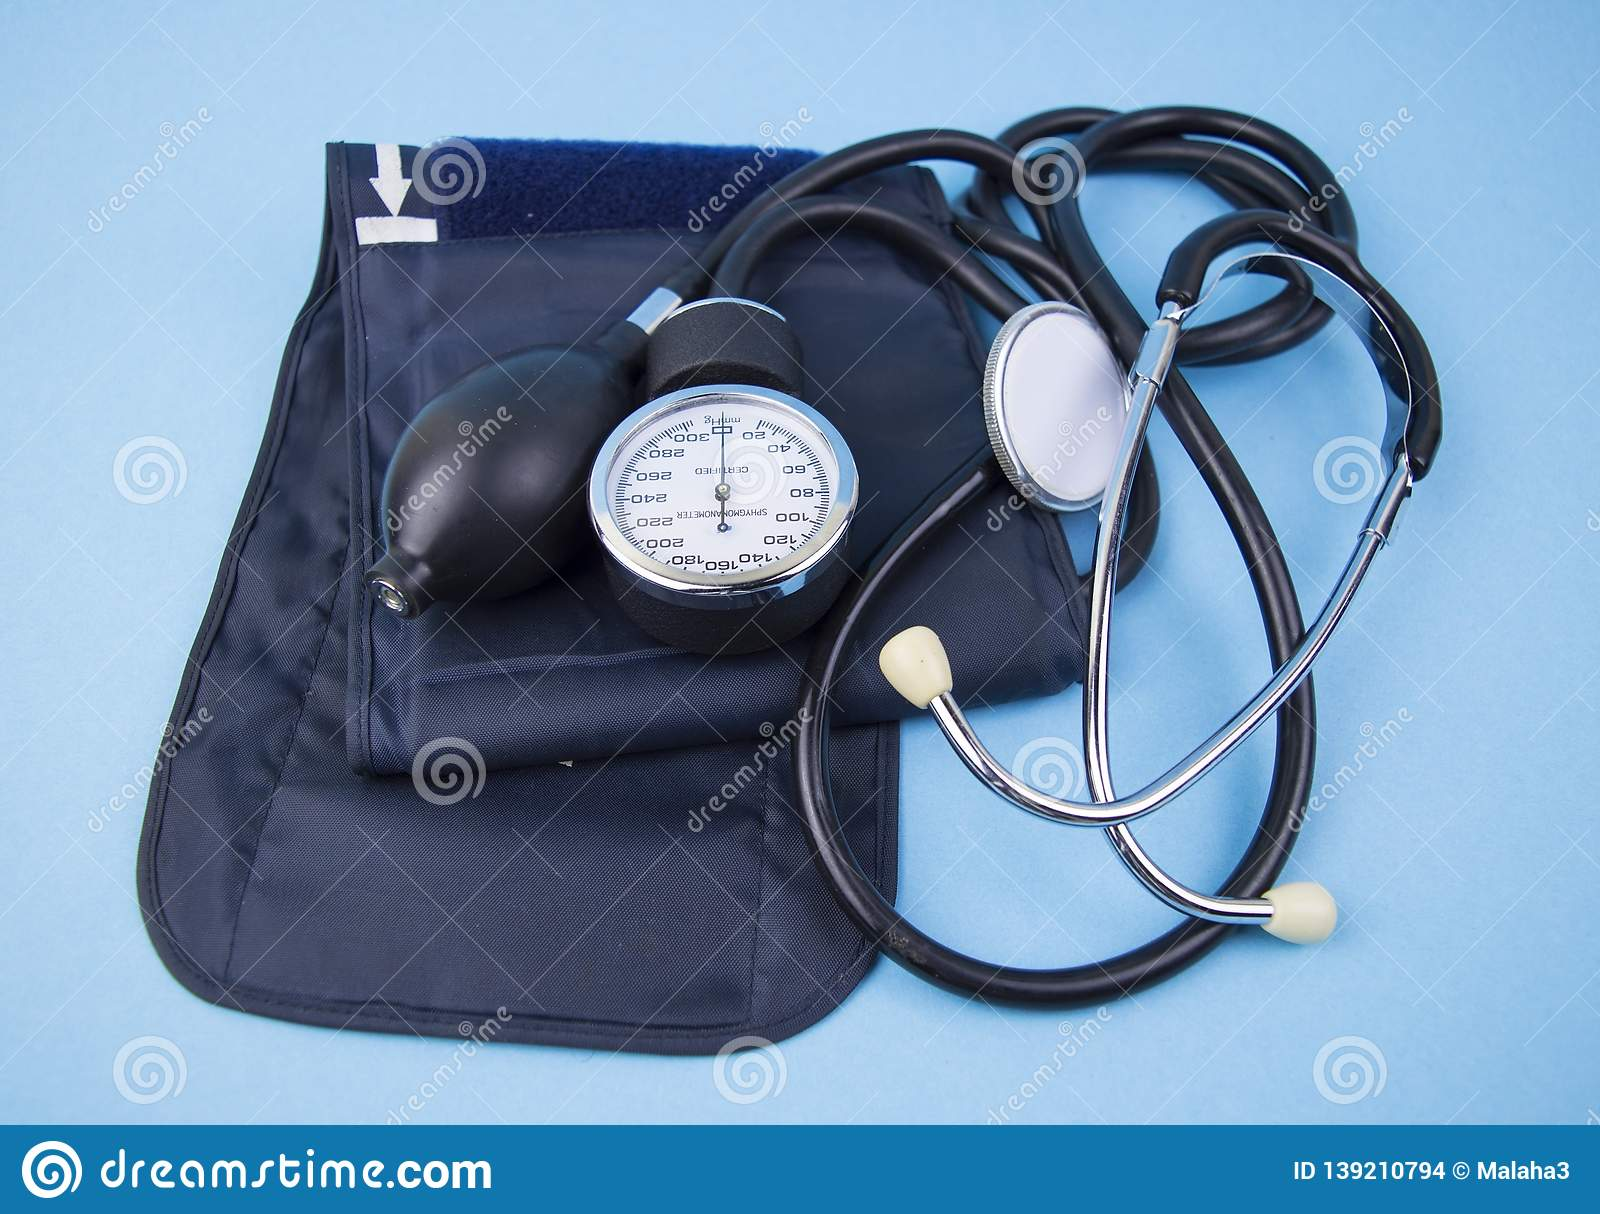 Mechanical tonometer on a blue background - a device for measuring blood pressure